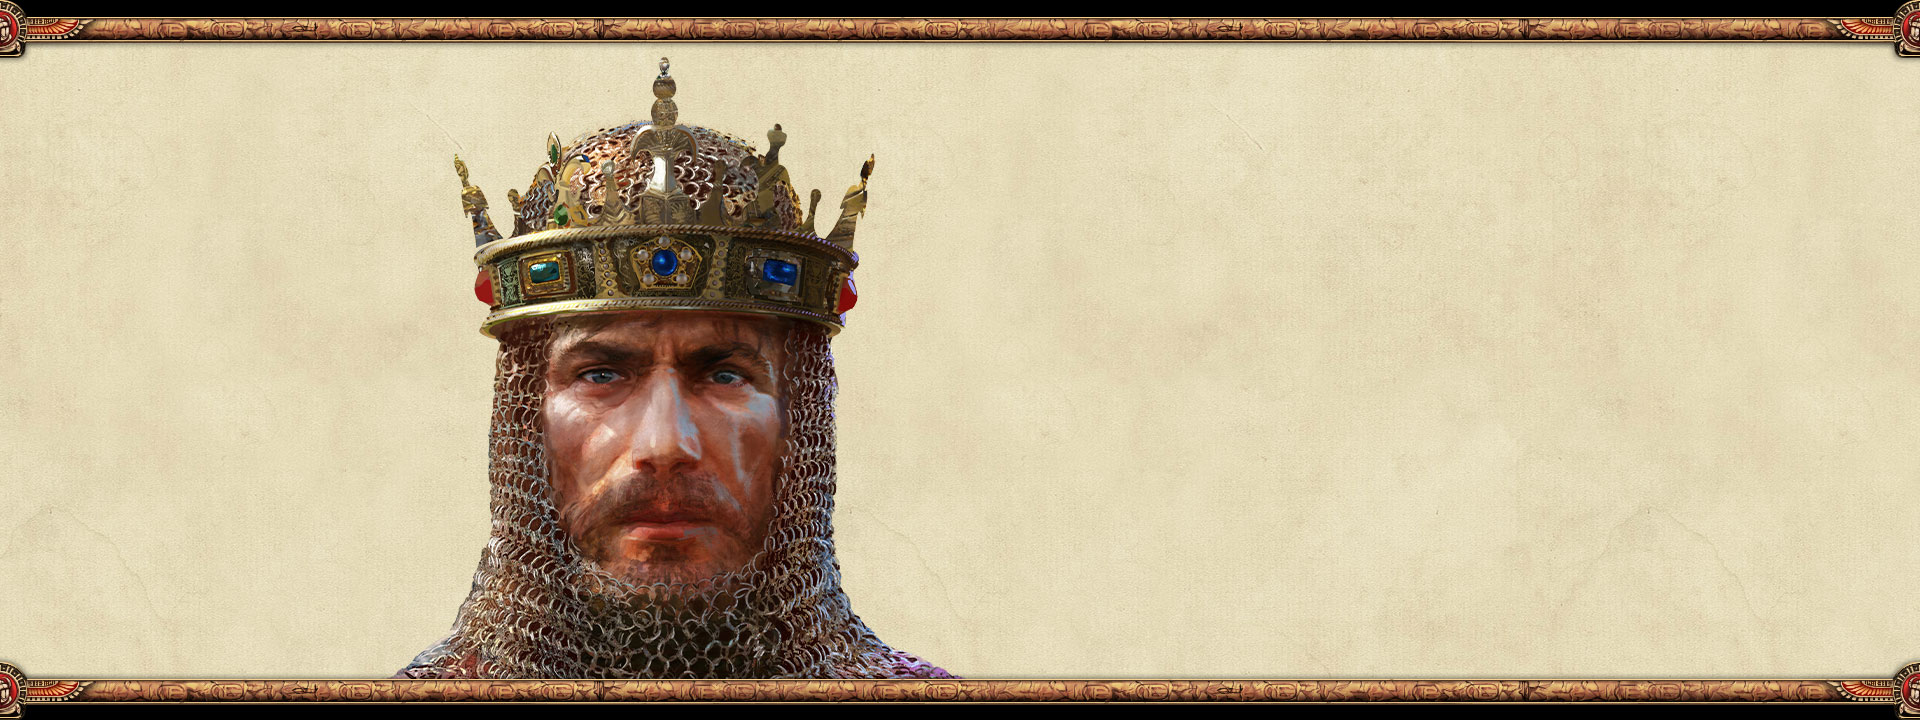 The ruler of an empire wearing chain mail and a crown